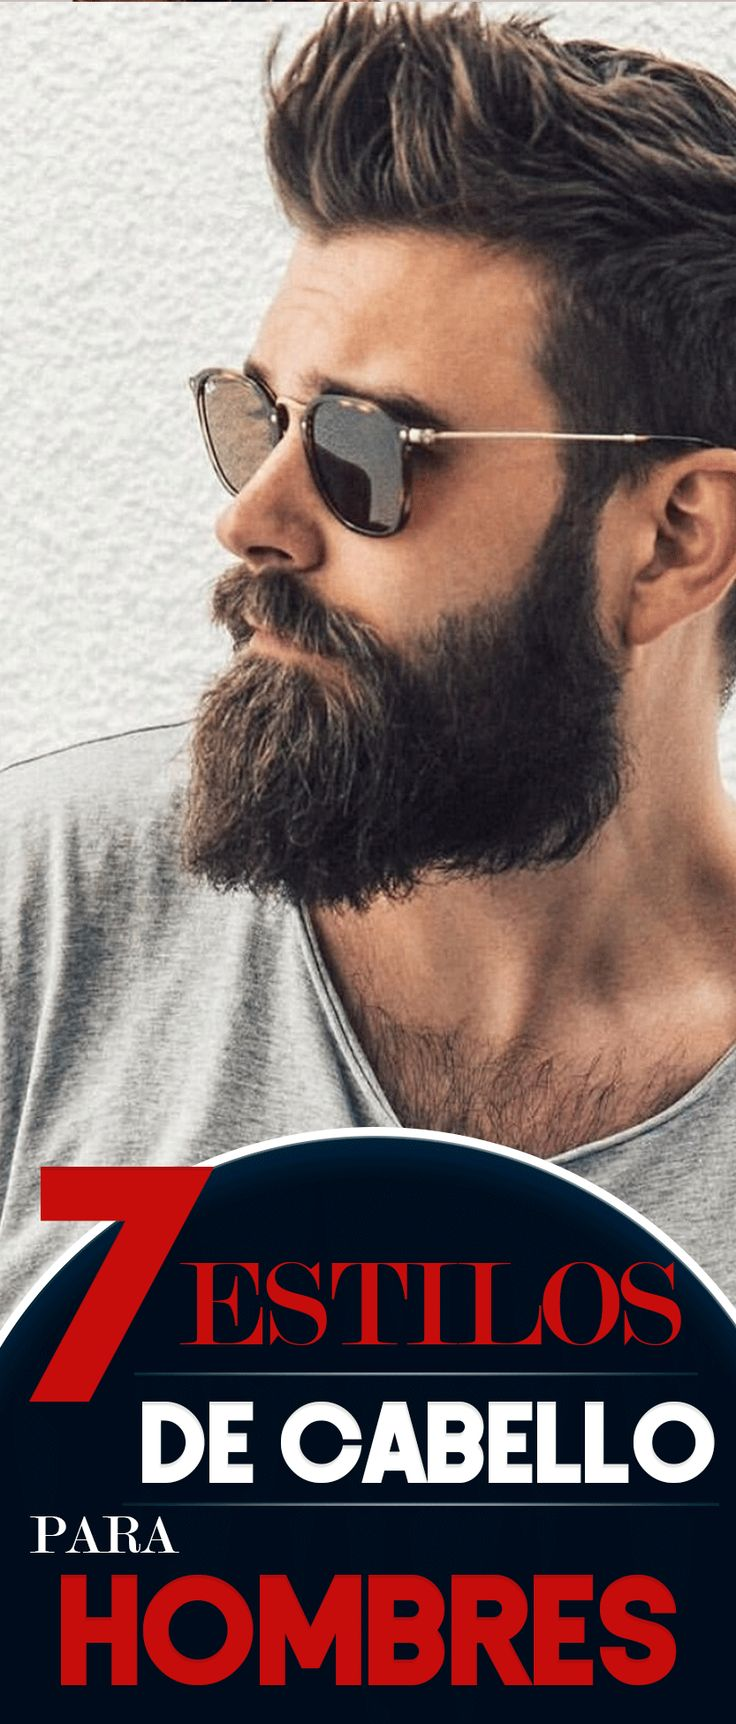 7 estilos de cabello para hombres. Corte de cabello para hombres, tipos de corte de cabello, corte zumbido largo, fleco moderno, corte estilo universitario, corte tipo sexy slicked, estilo de cabello capas largas, corte tipo pompadour, cabello estilo césar Haircut for men, types of haircut, long buzz cut, modern fringe, college style cut, slicked sexy cut, long layered hair style, pompadour cut, Caesar hair style men's fashion.